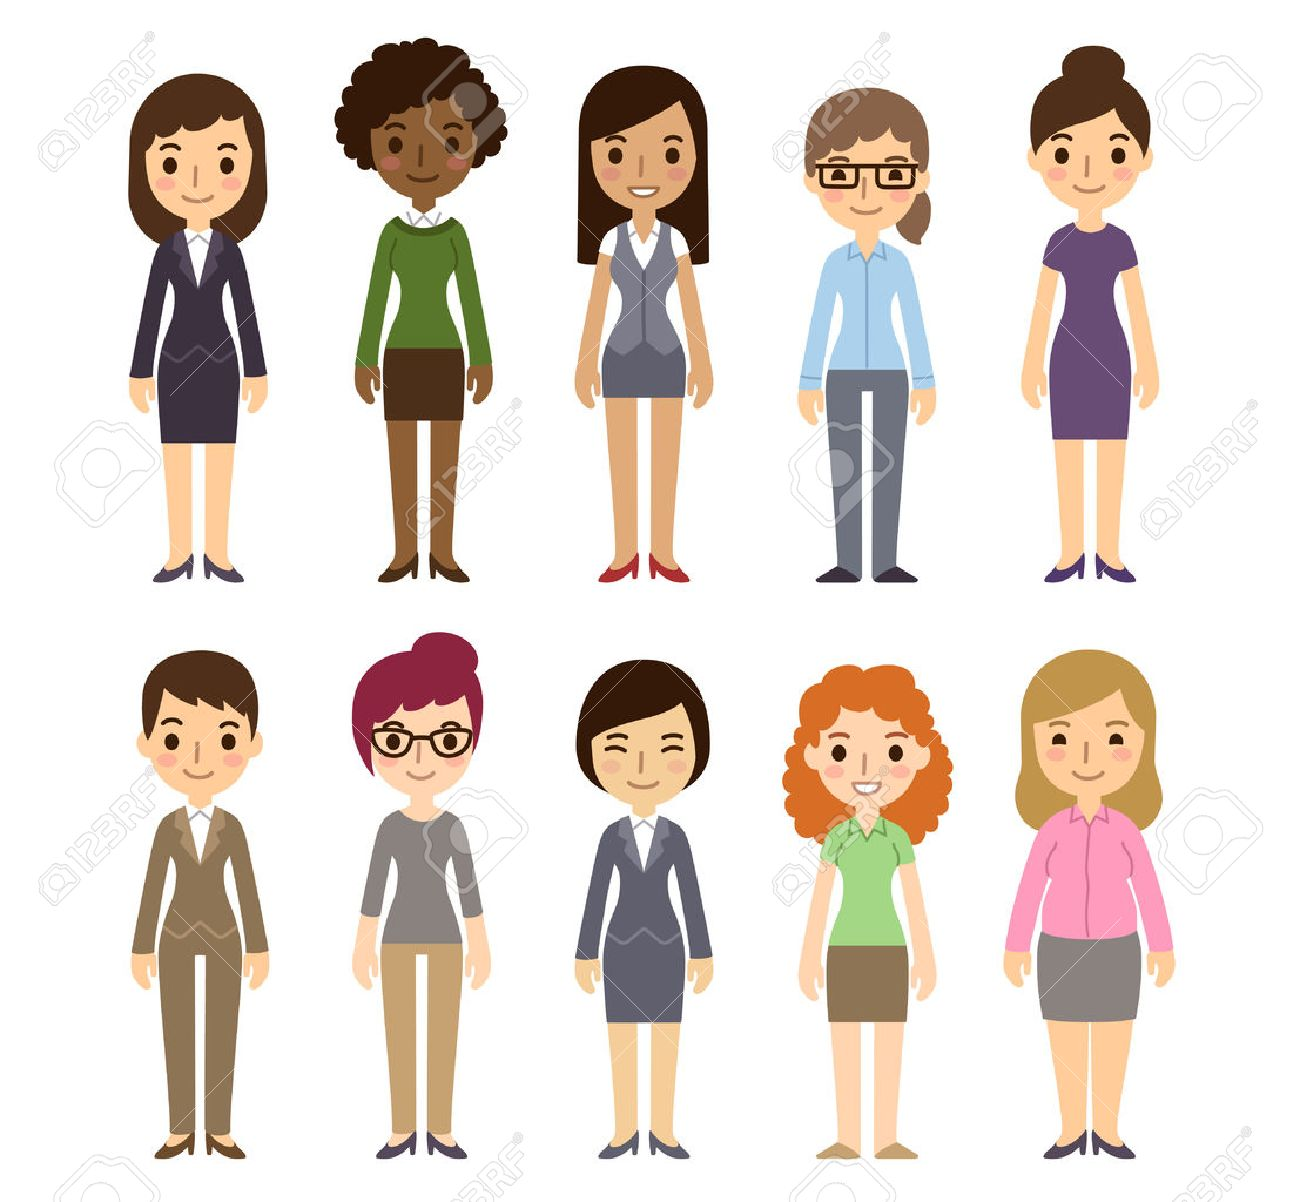 Set of diverse businesswomen isolated on white background. Different nationalities and dress styles. Cute and simple flat cartoon style. - 42186945